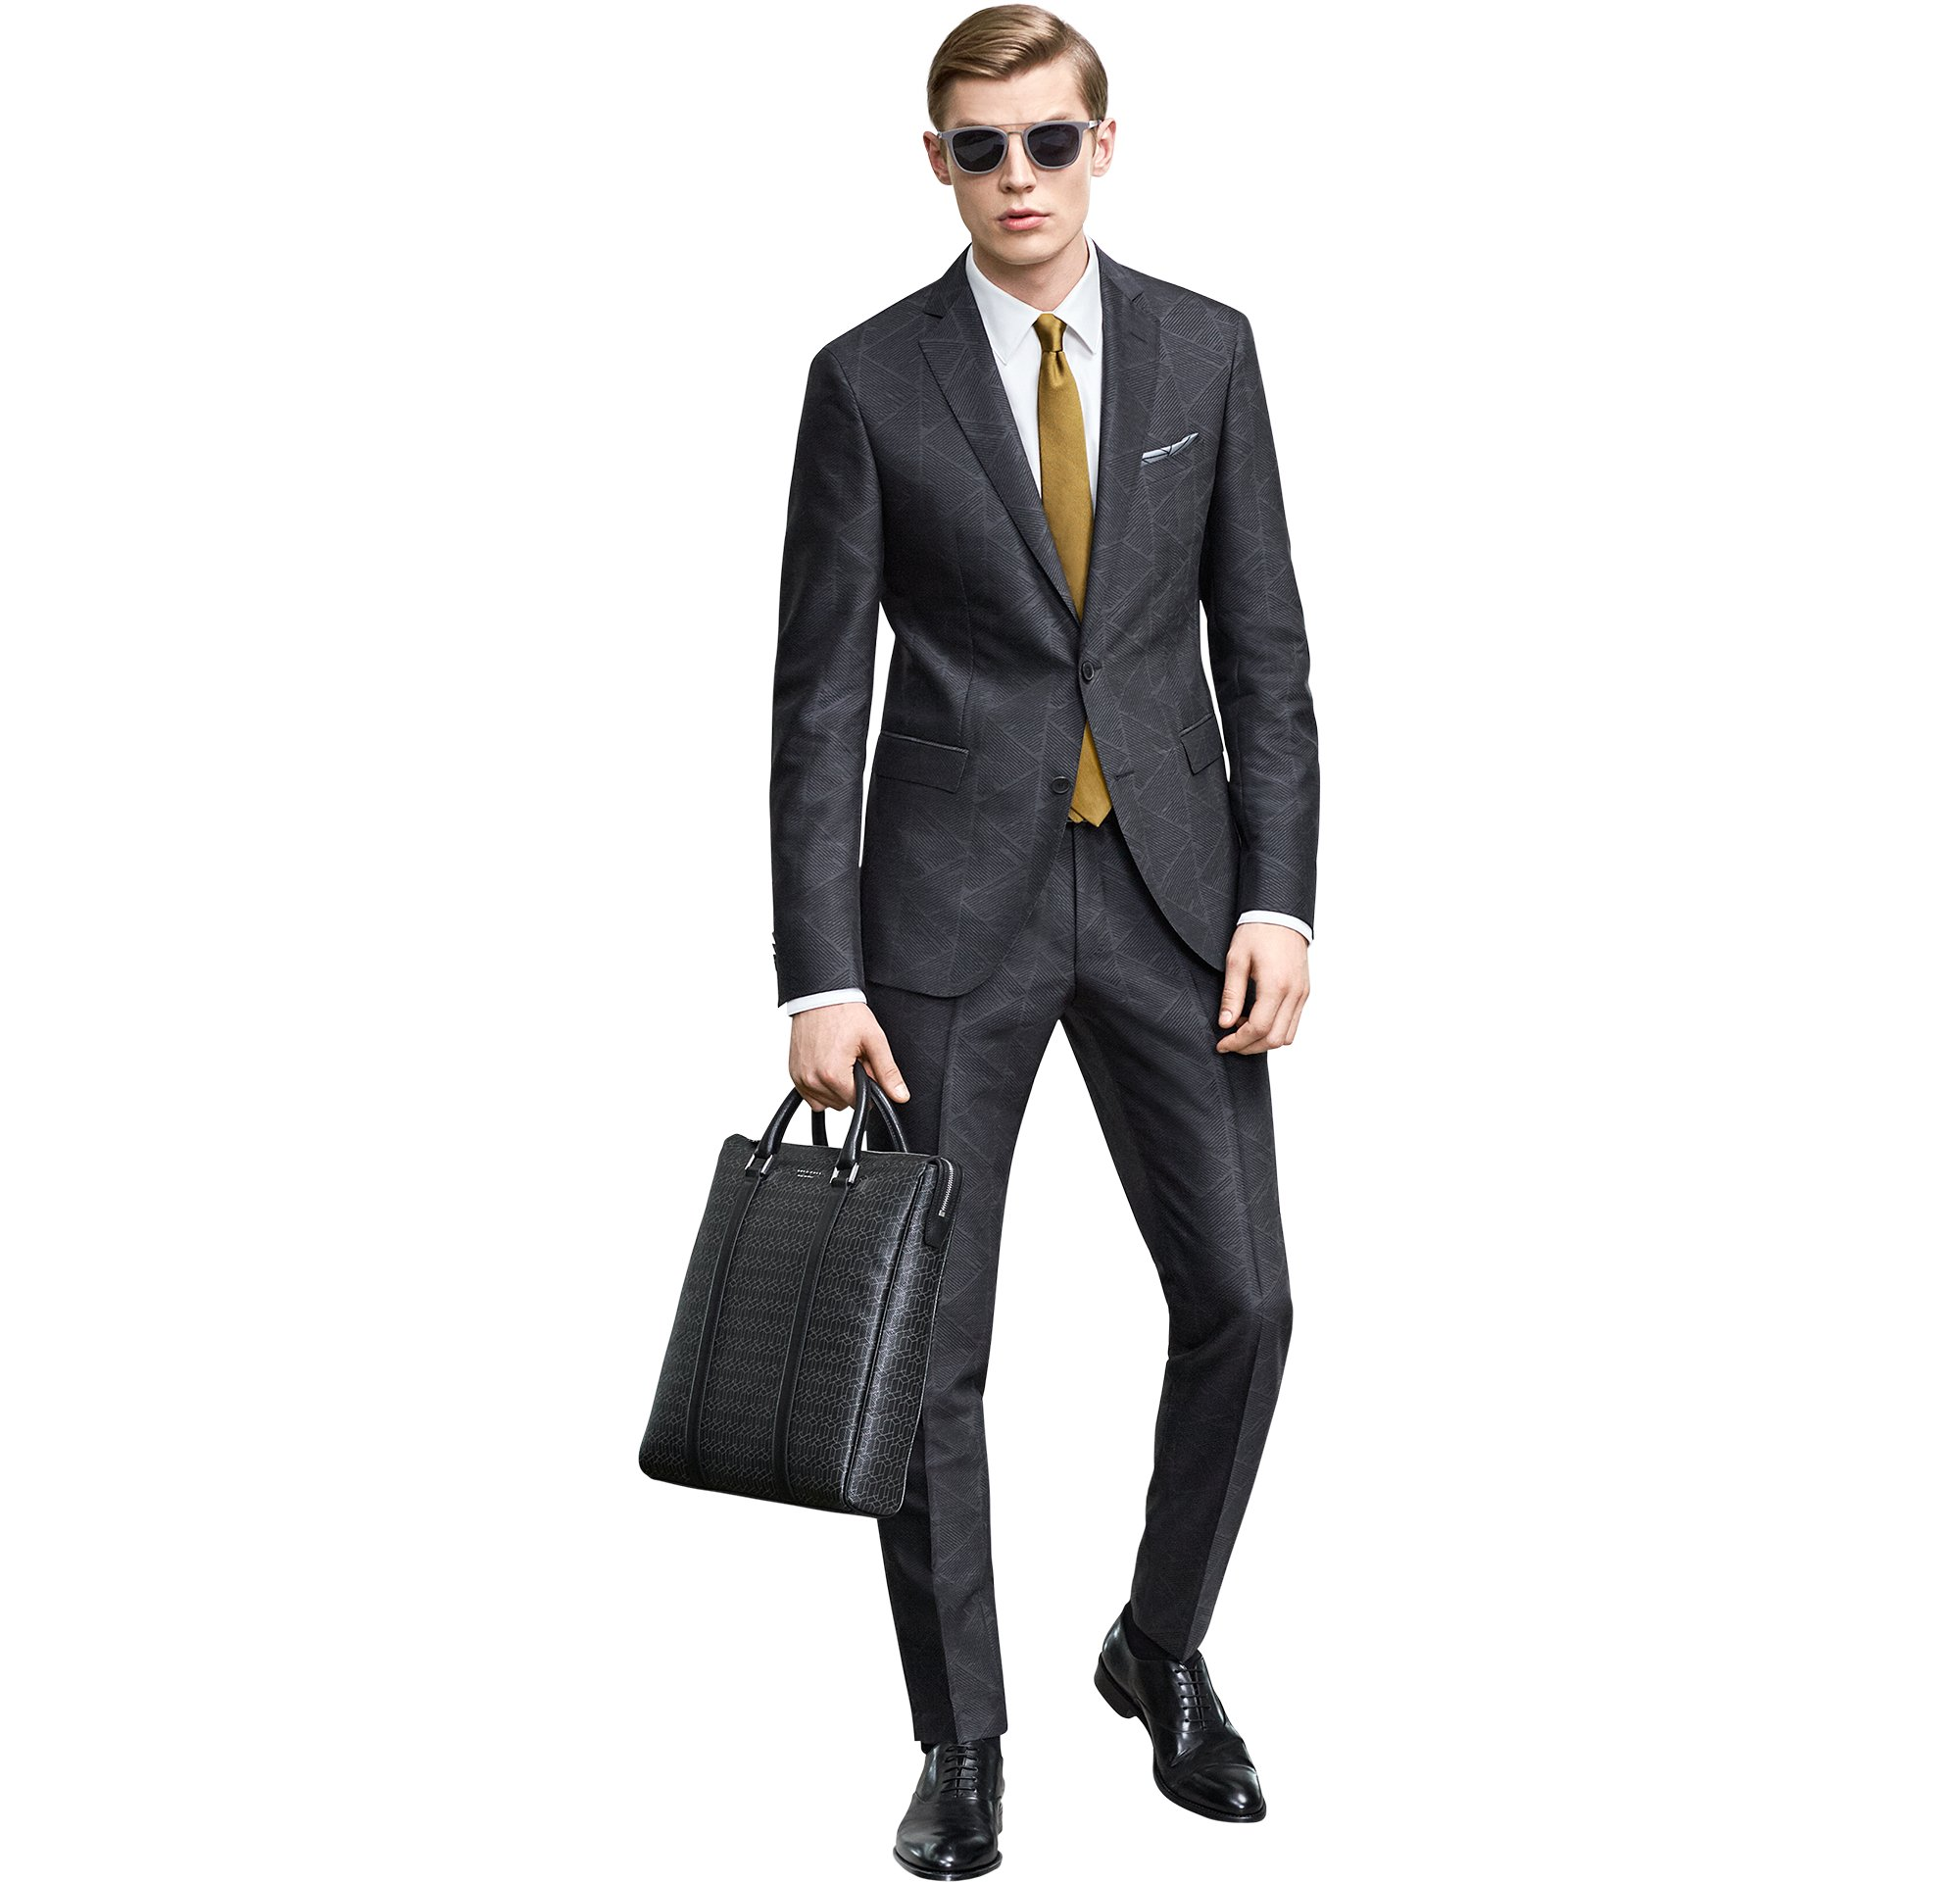 Dark grey suit over white shirt and tie with leather bag by BOSS